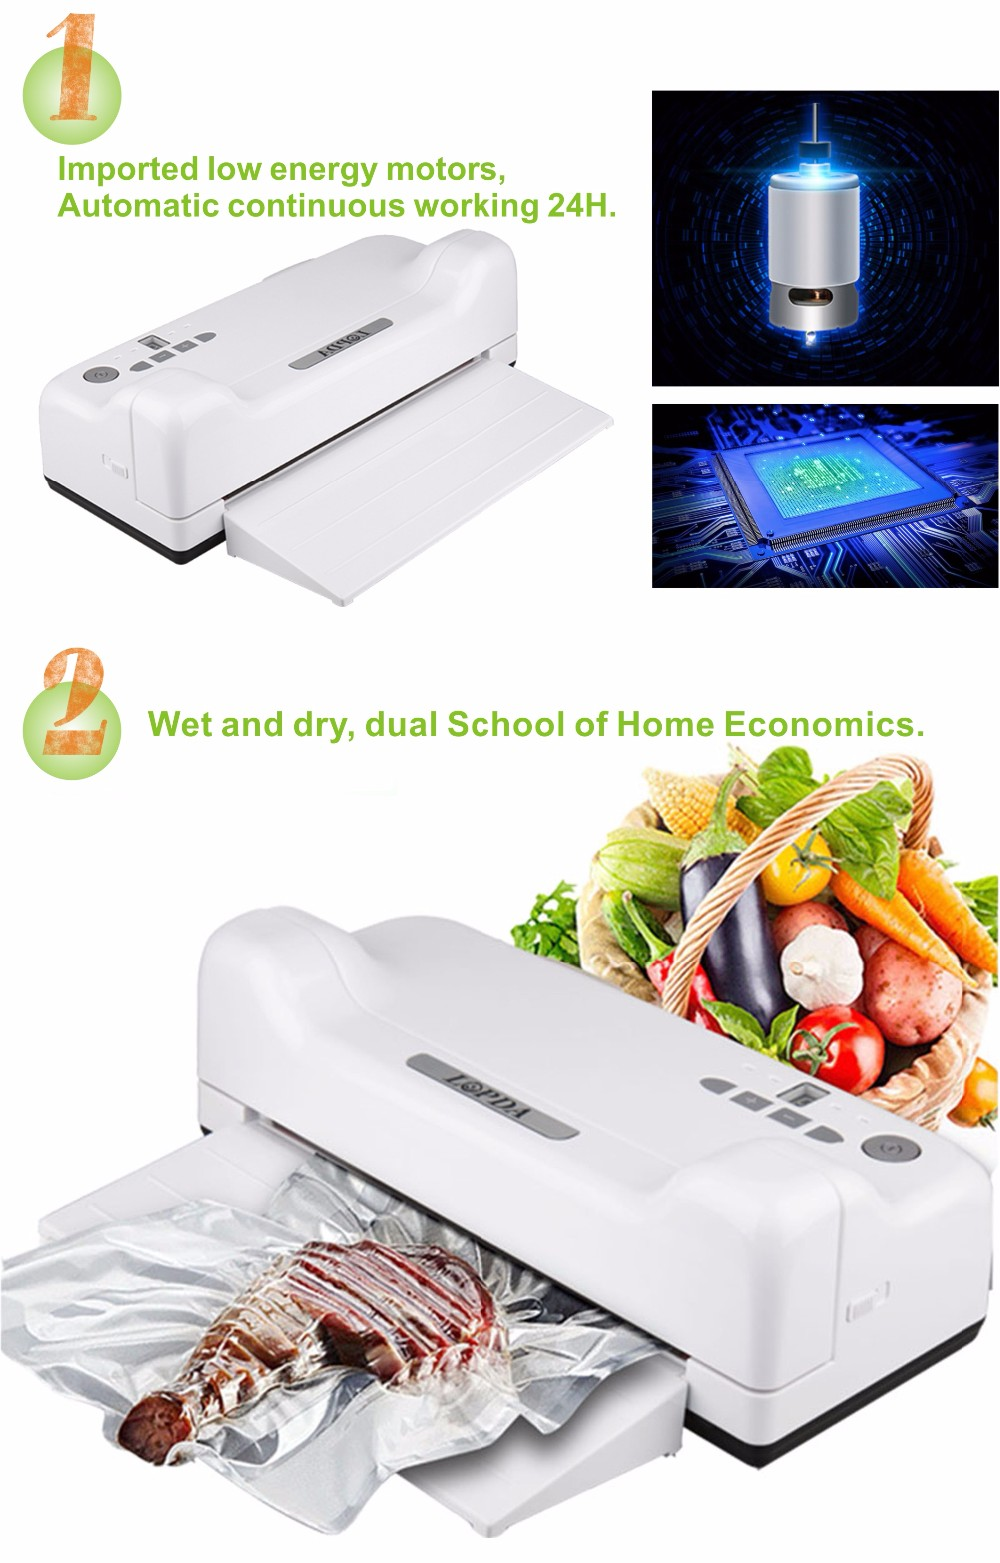 Portable commercial high quality vacuum sealing machines for medicines